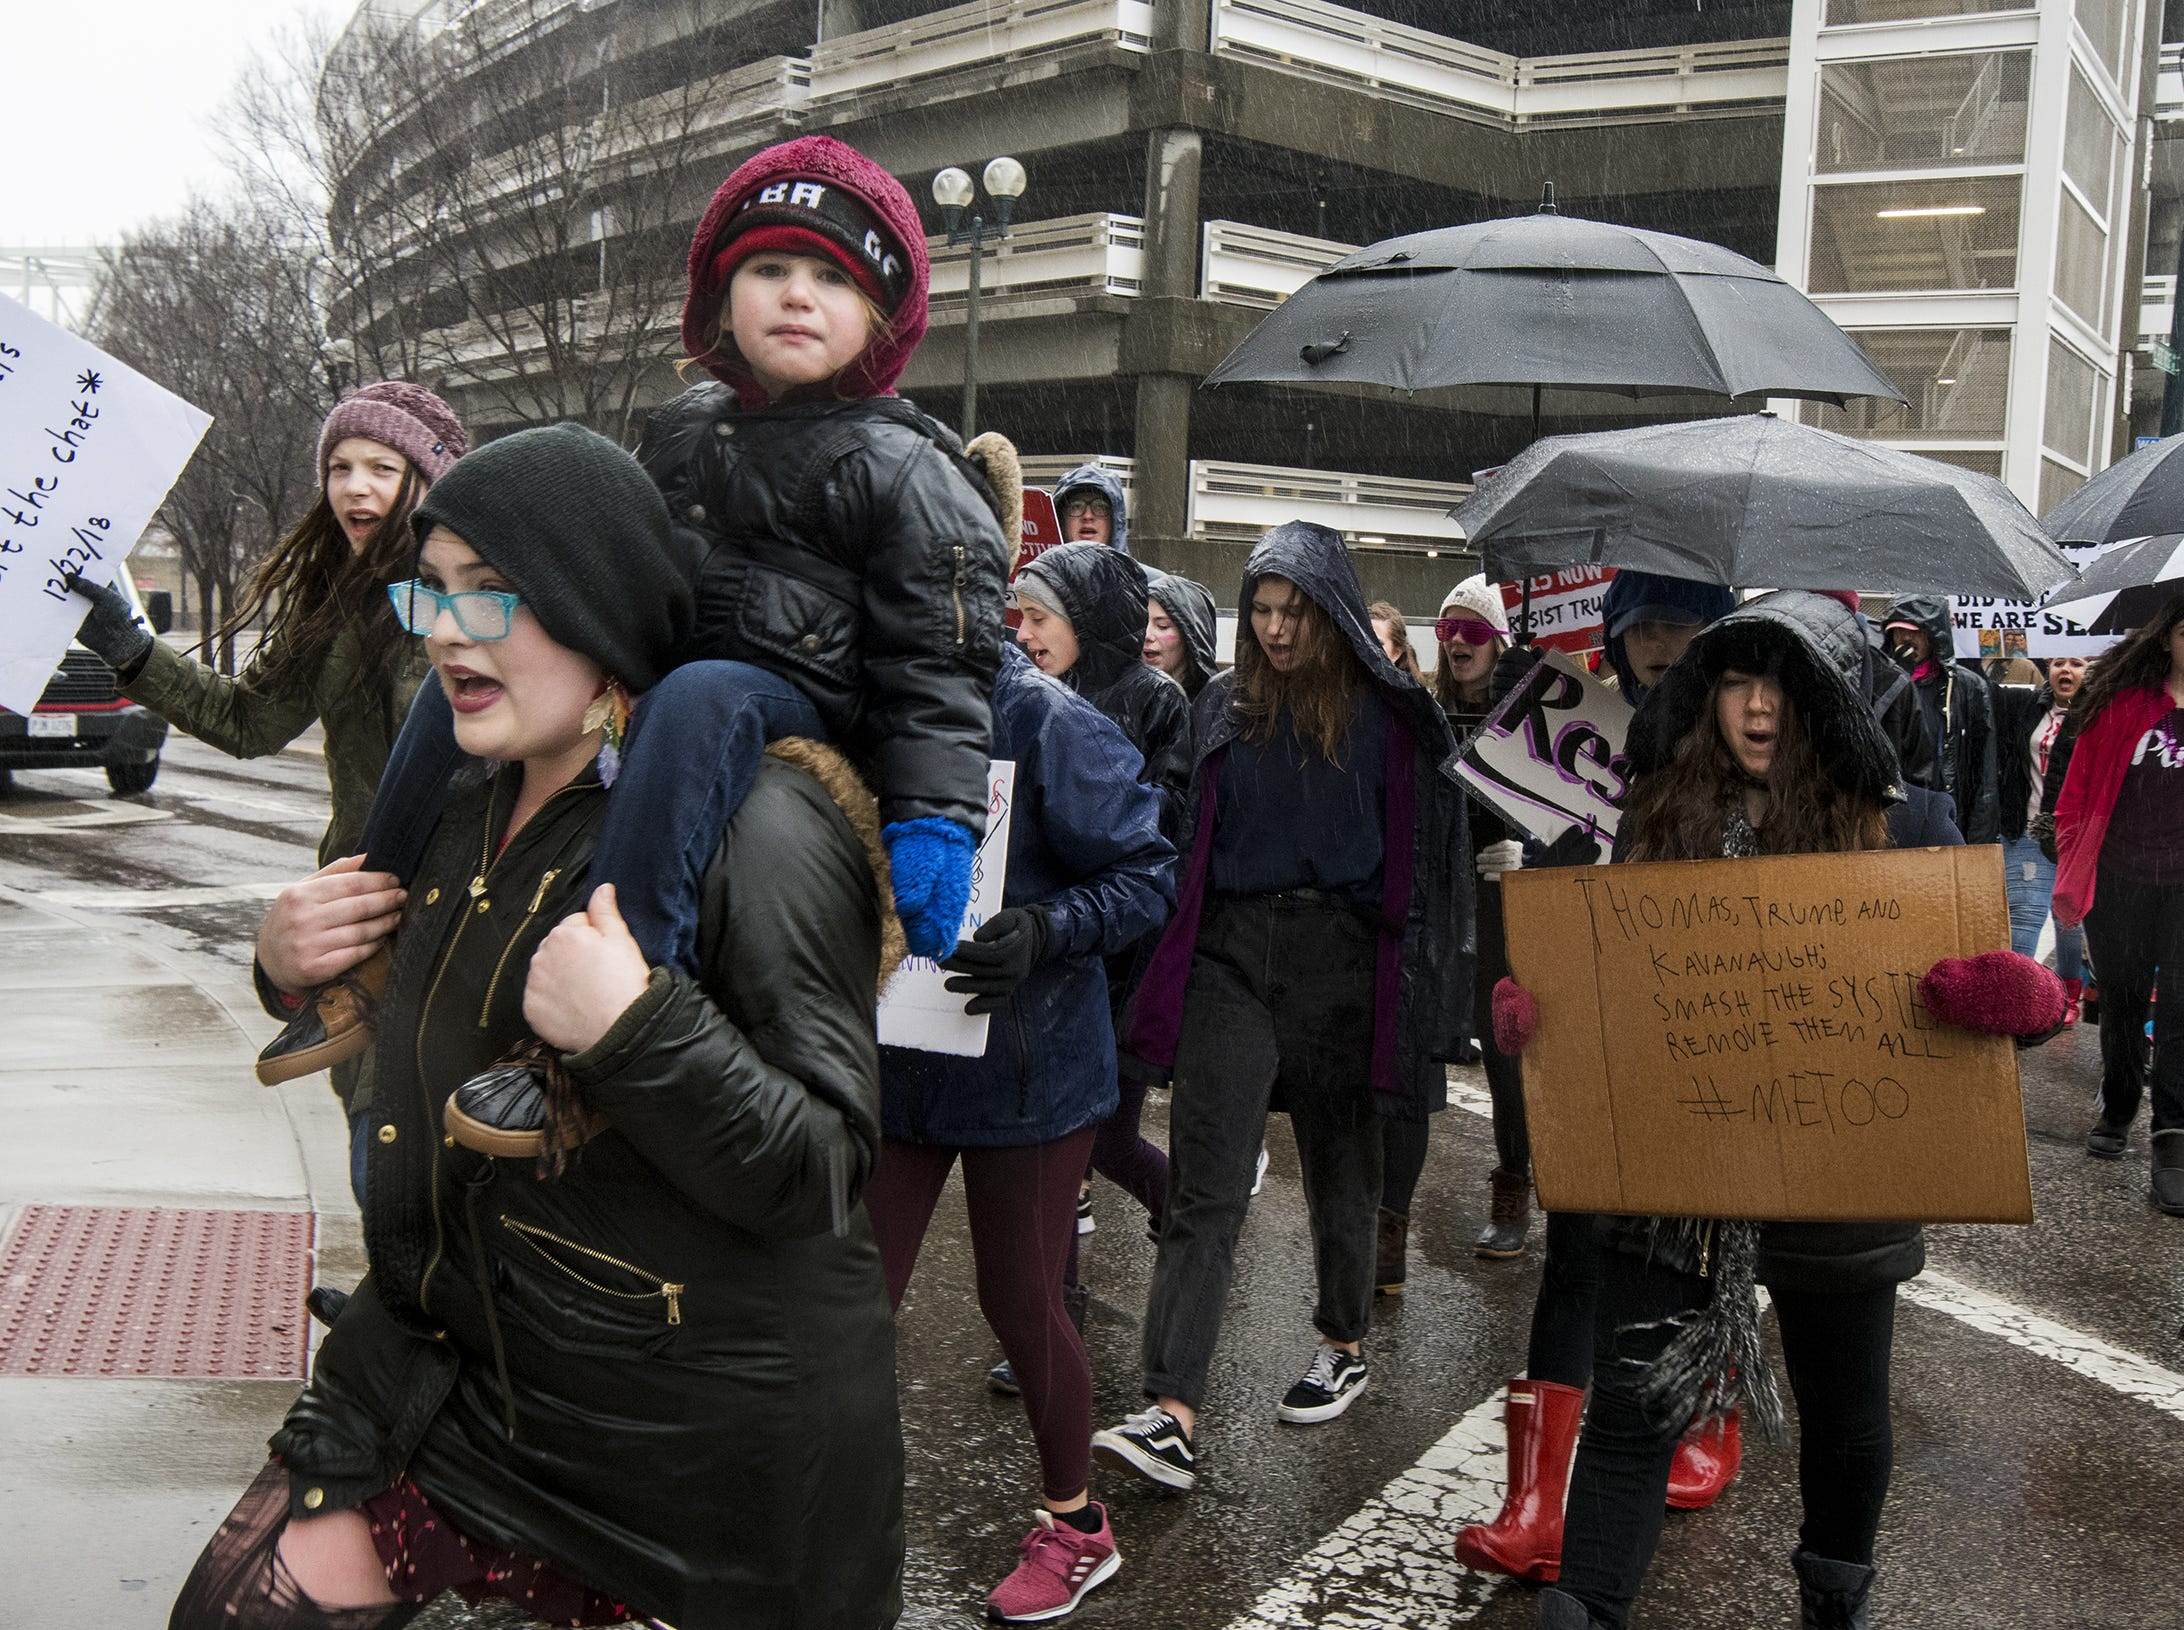 Ayla carries son Akira,3, during the 2019 Women's March organized by the Cincinnati chapters of Socialist Alternative, Democratic Socialists of America and the International Socialist Organization Saturday, January 19, 2019 in Cincinnati, Ohio.